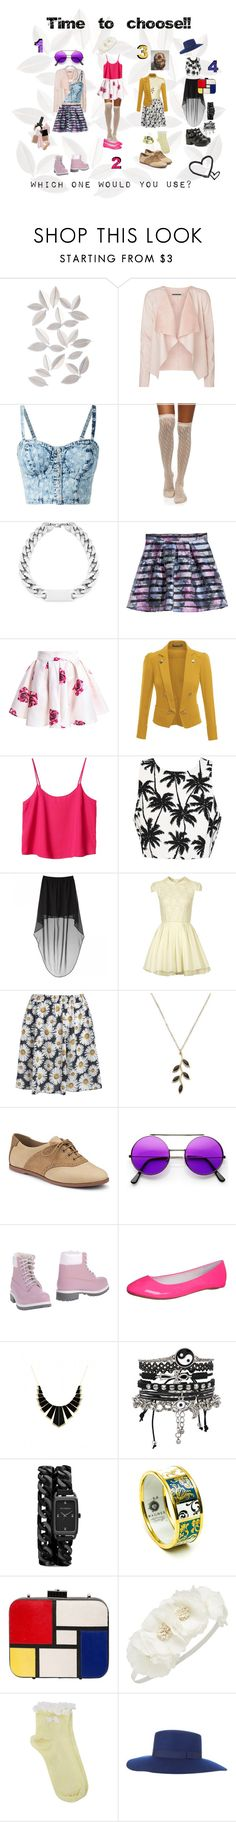 """""""Time to choose!"""" by mssantos ❤ liked on Polyvore featuring Umbra, Vero Moda, H&M, Doublju, Monki, Lipsy, Pieces, Sperry, even&odd and House of Harlow 1960"""